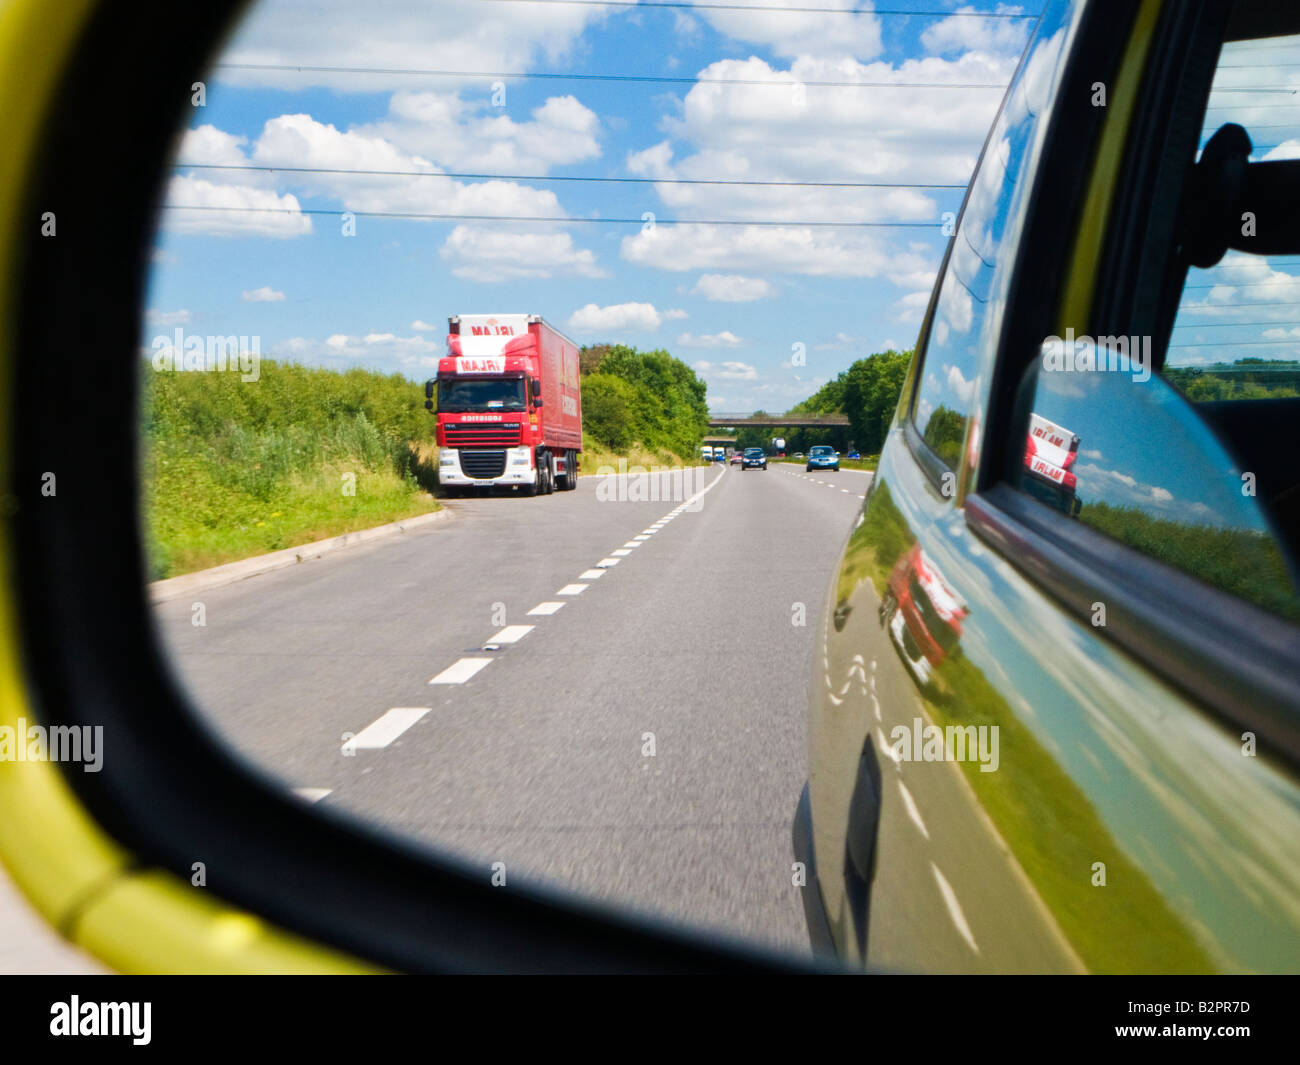 Looking at the road behind - rear view of an English dual carriageway road through a car wing mirror UK - Stock Image